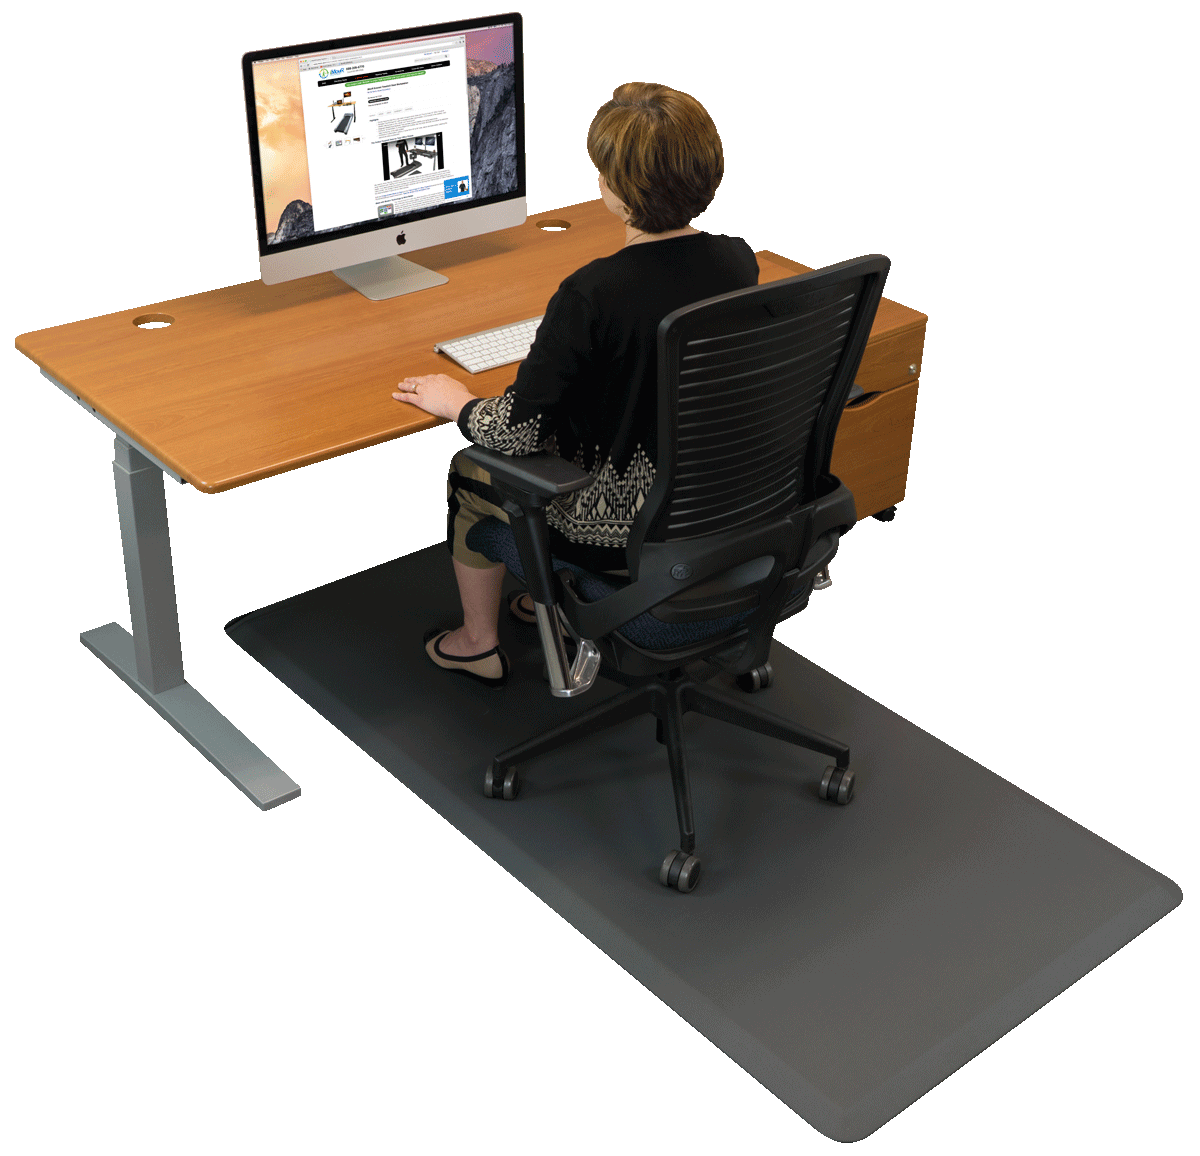 Under Chair Mat Buy Anti Fatigue Mats Best Mat For Standing Desks Imovr